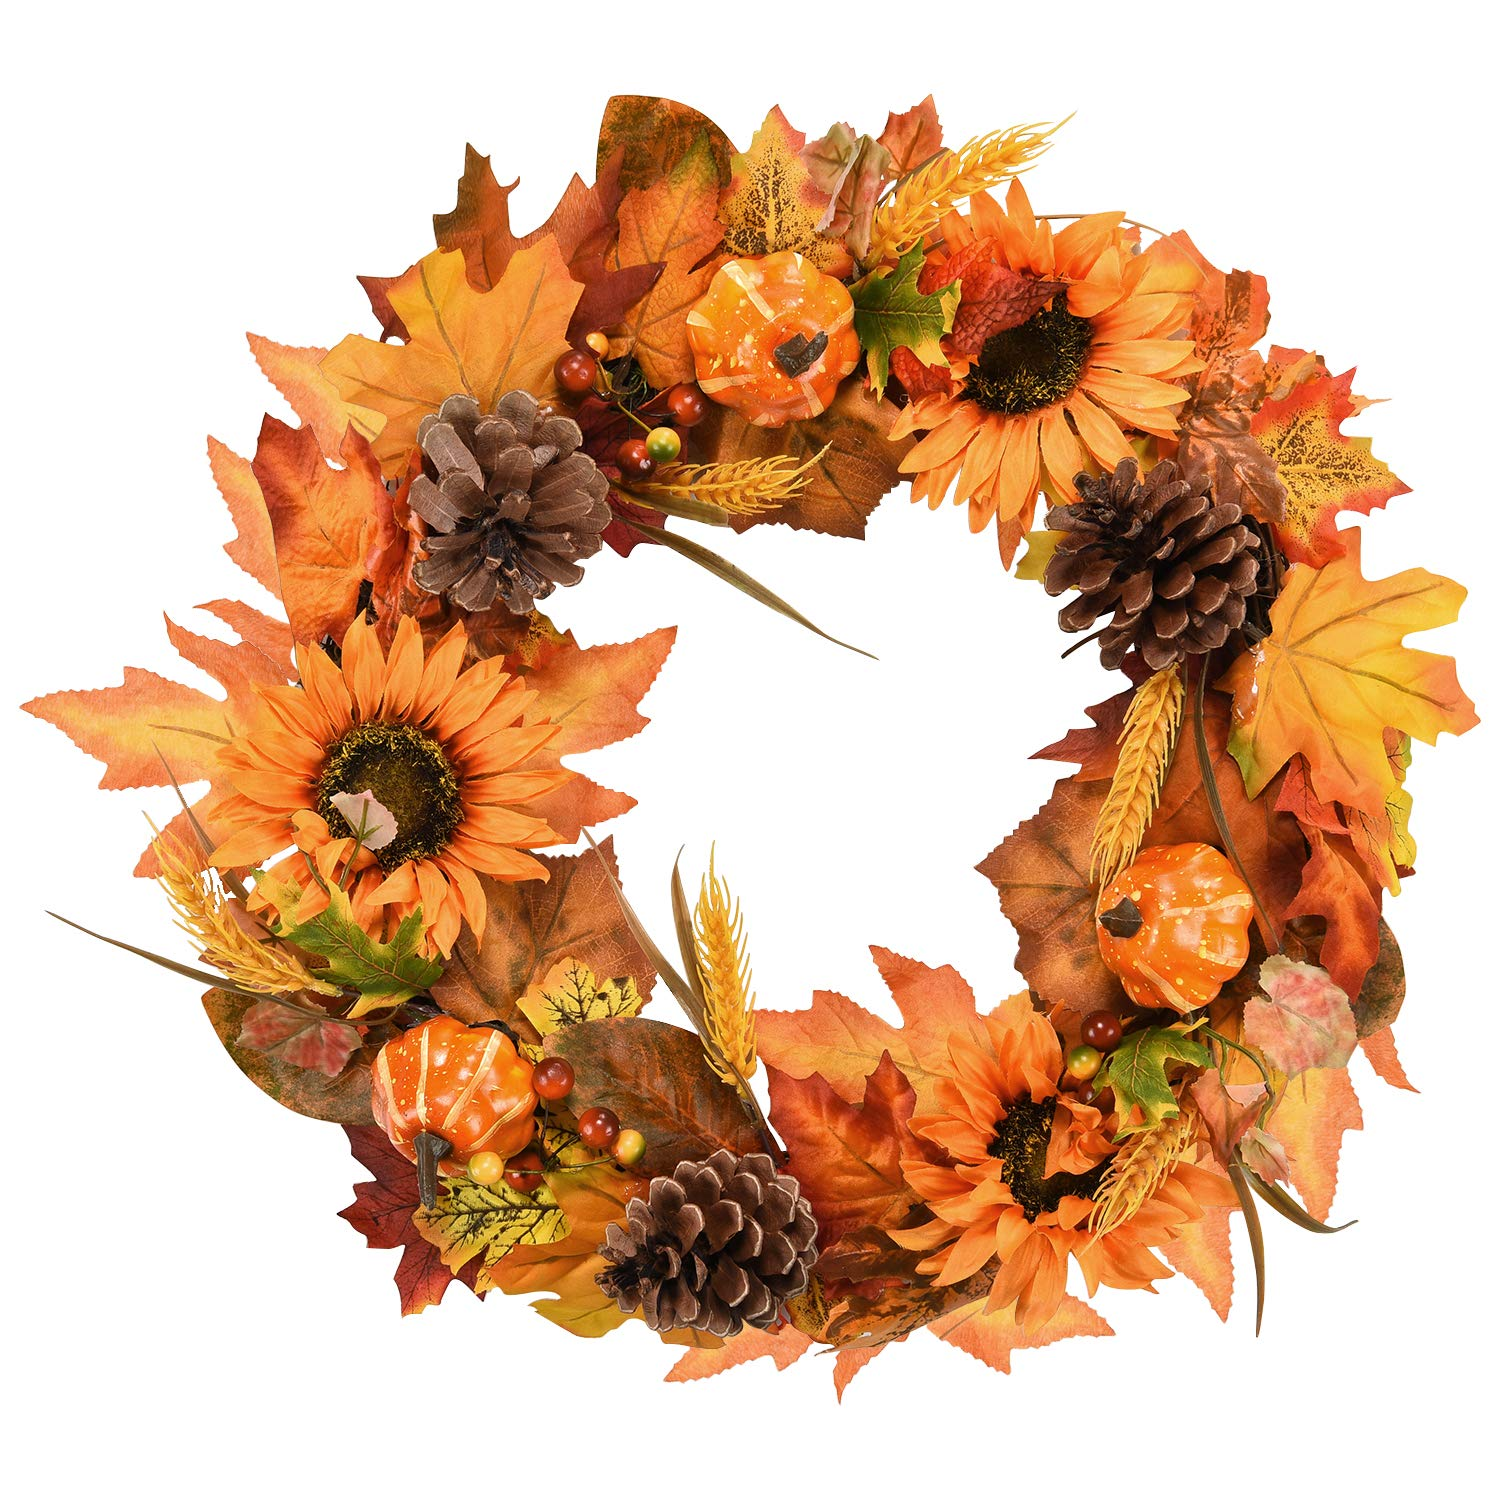 Dolicer Artificial Maple Leaf Wreath with Sunflowers Pumpkins Pine Cone and Wheat Wreath for Halloween and Thanksgiving Home Indoor or Outdoor Arrangement Decoration by Dolicer